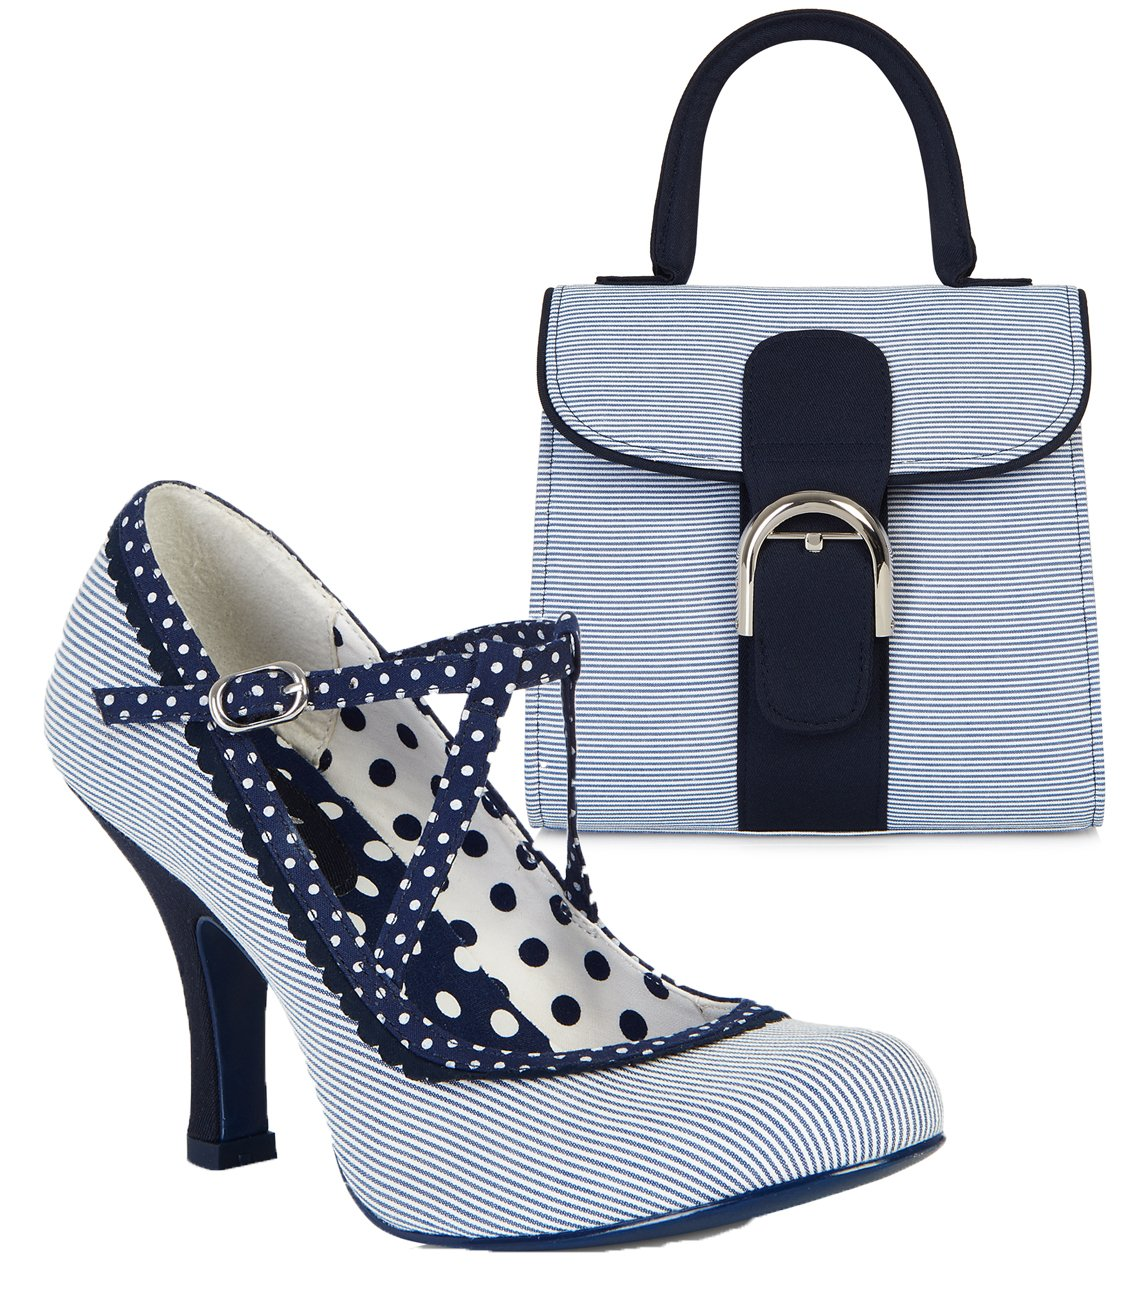 Ruby Shoo Women's Blue & White Stripe Jessica Mary Jane Pumps & Riva Bag UK 4 EU 37 by Ruby Shoo